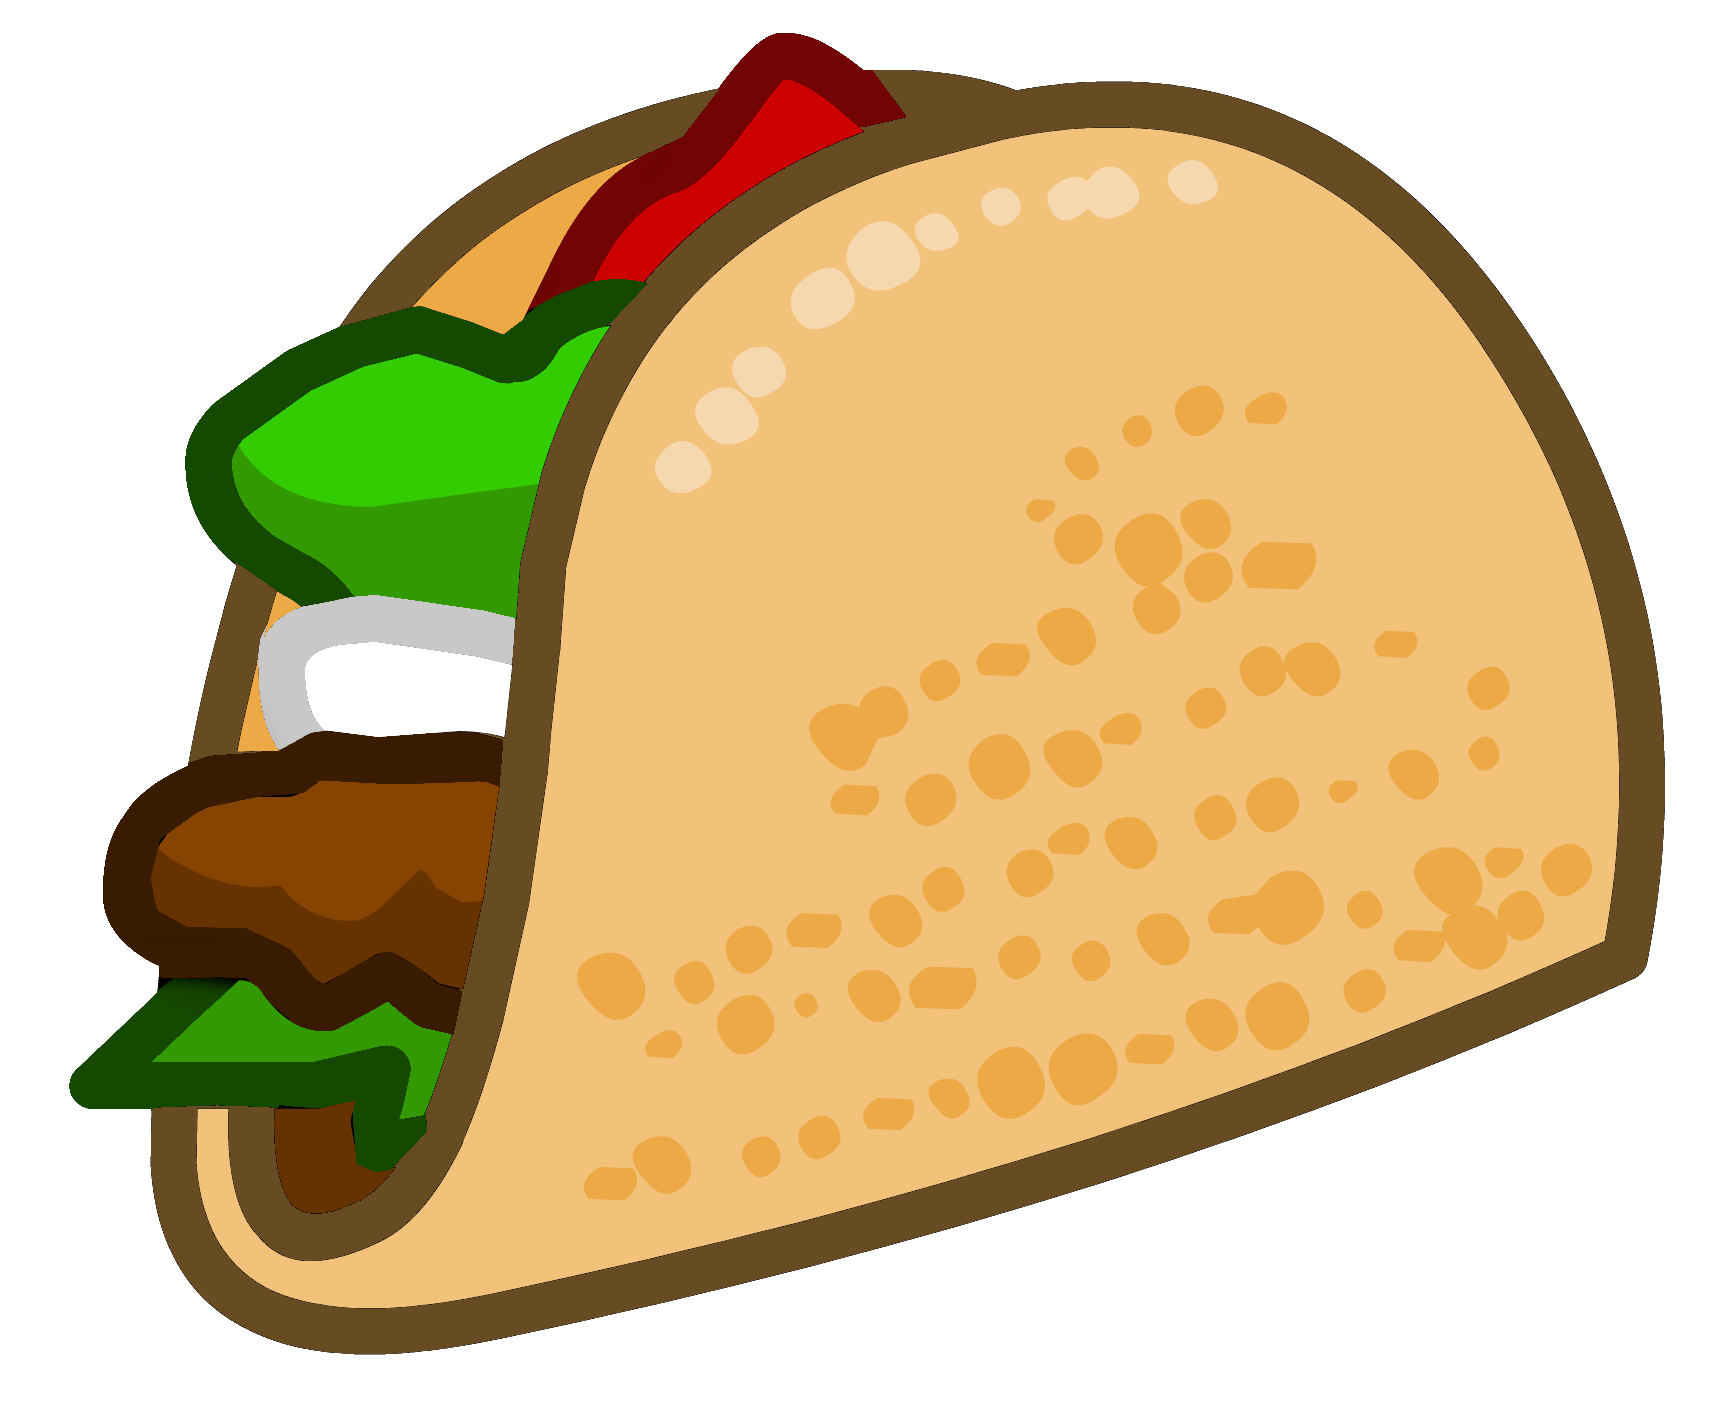 Youtube subscribe bell icon png. Taco clipart at getdrawings